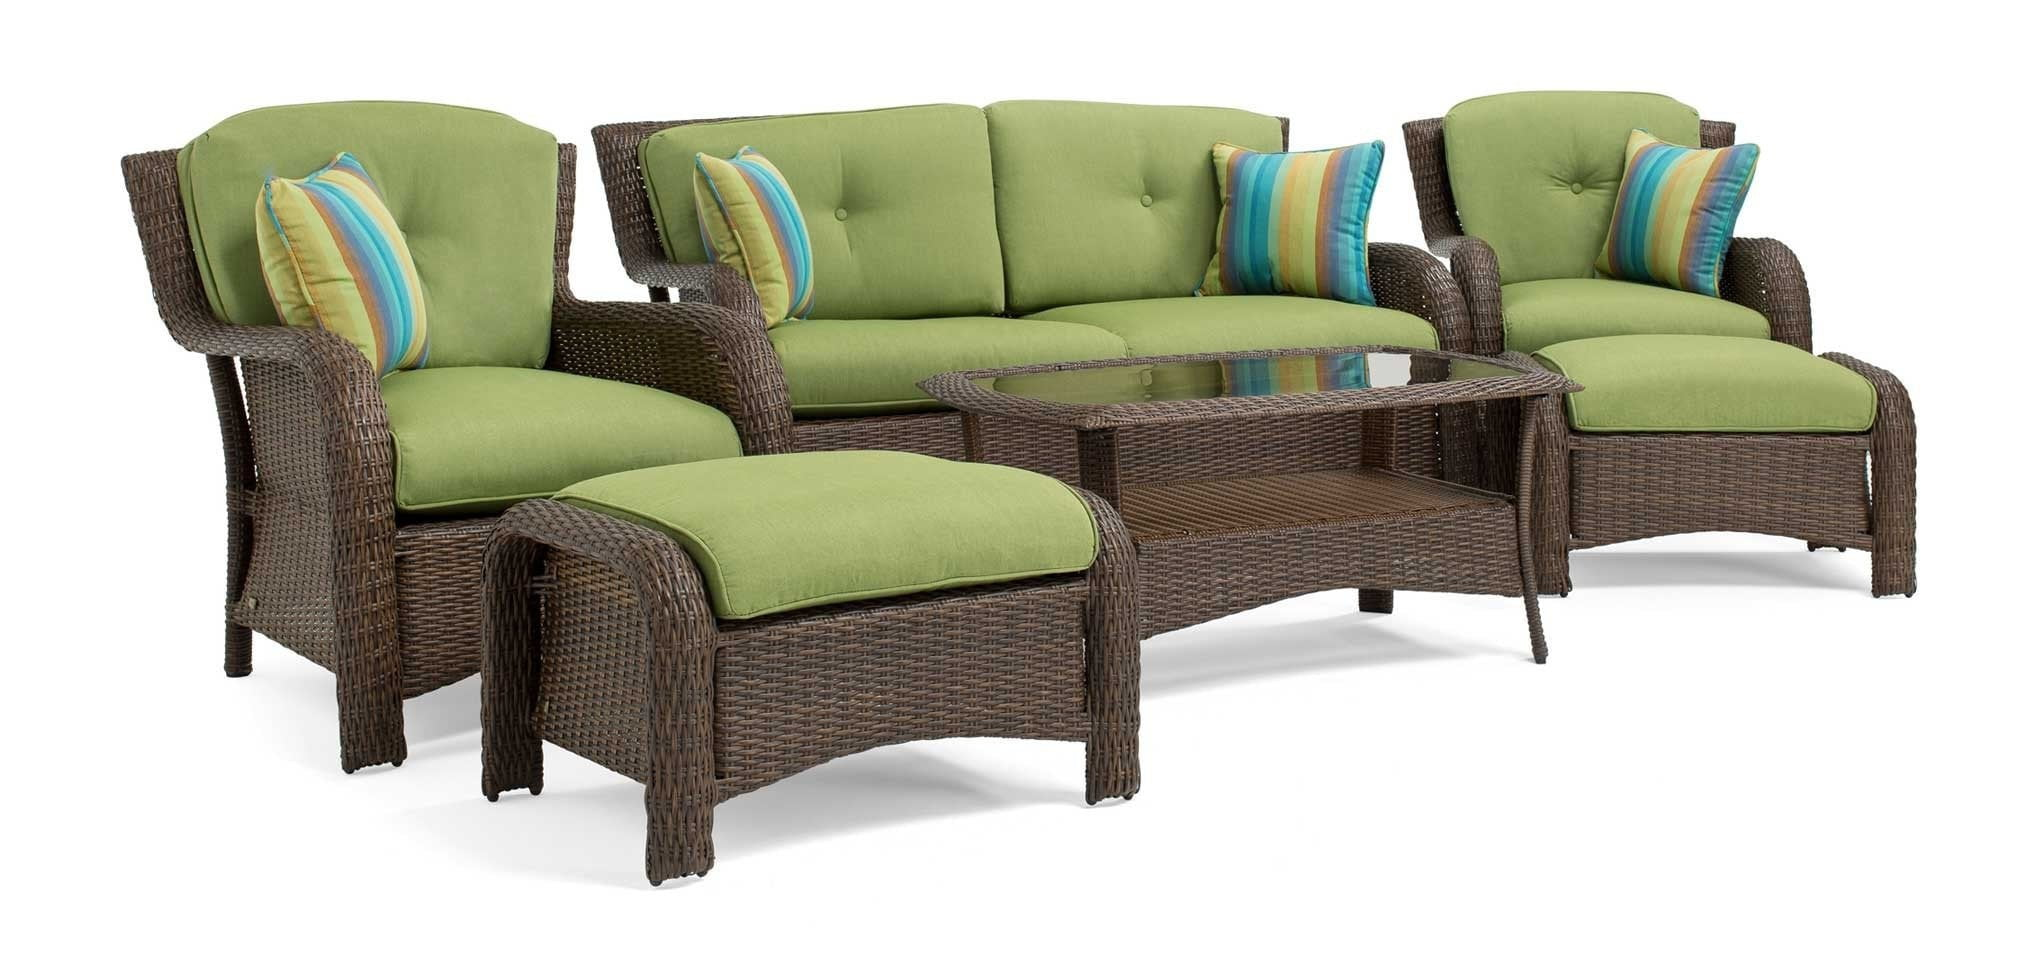 sawyer 6 piece resin wicker patio furniture set cilantro green - Resin Wicker Patio Furniture